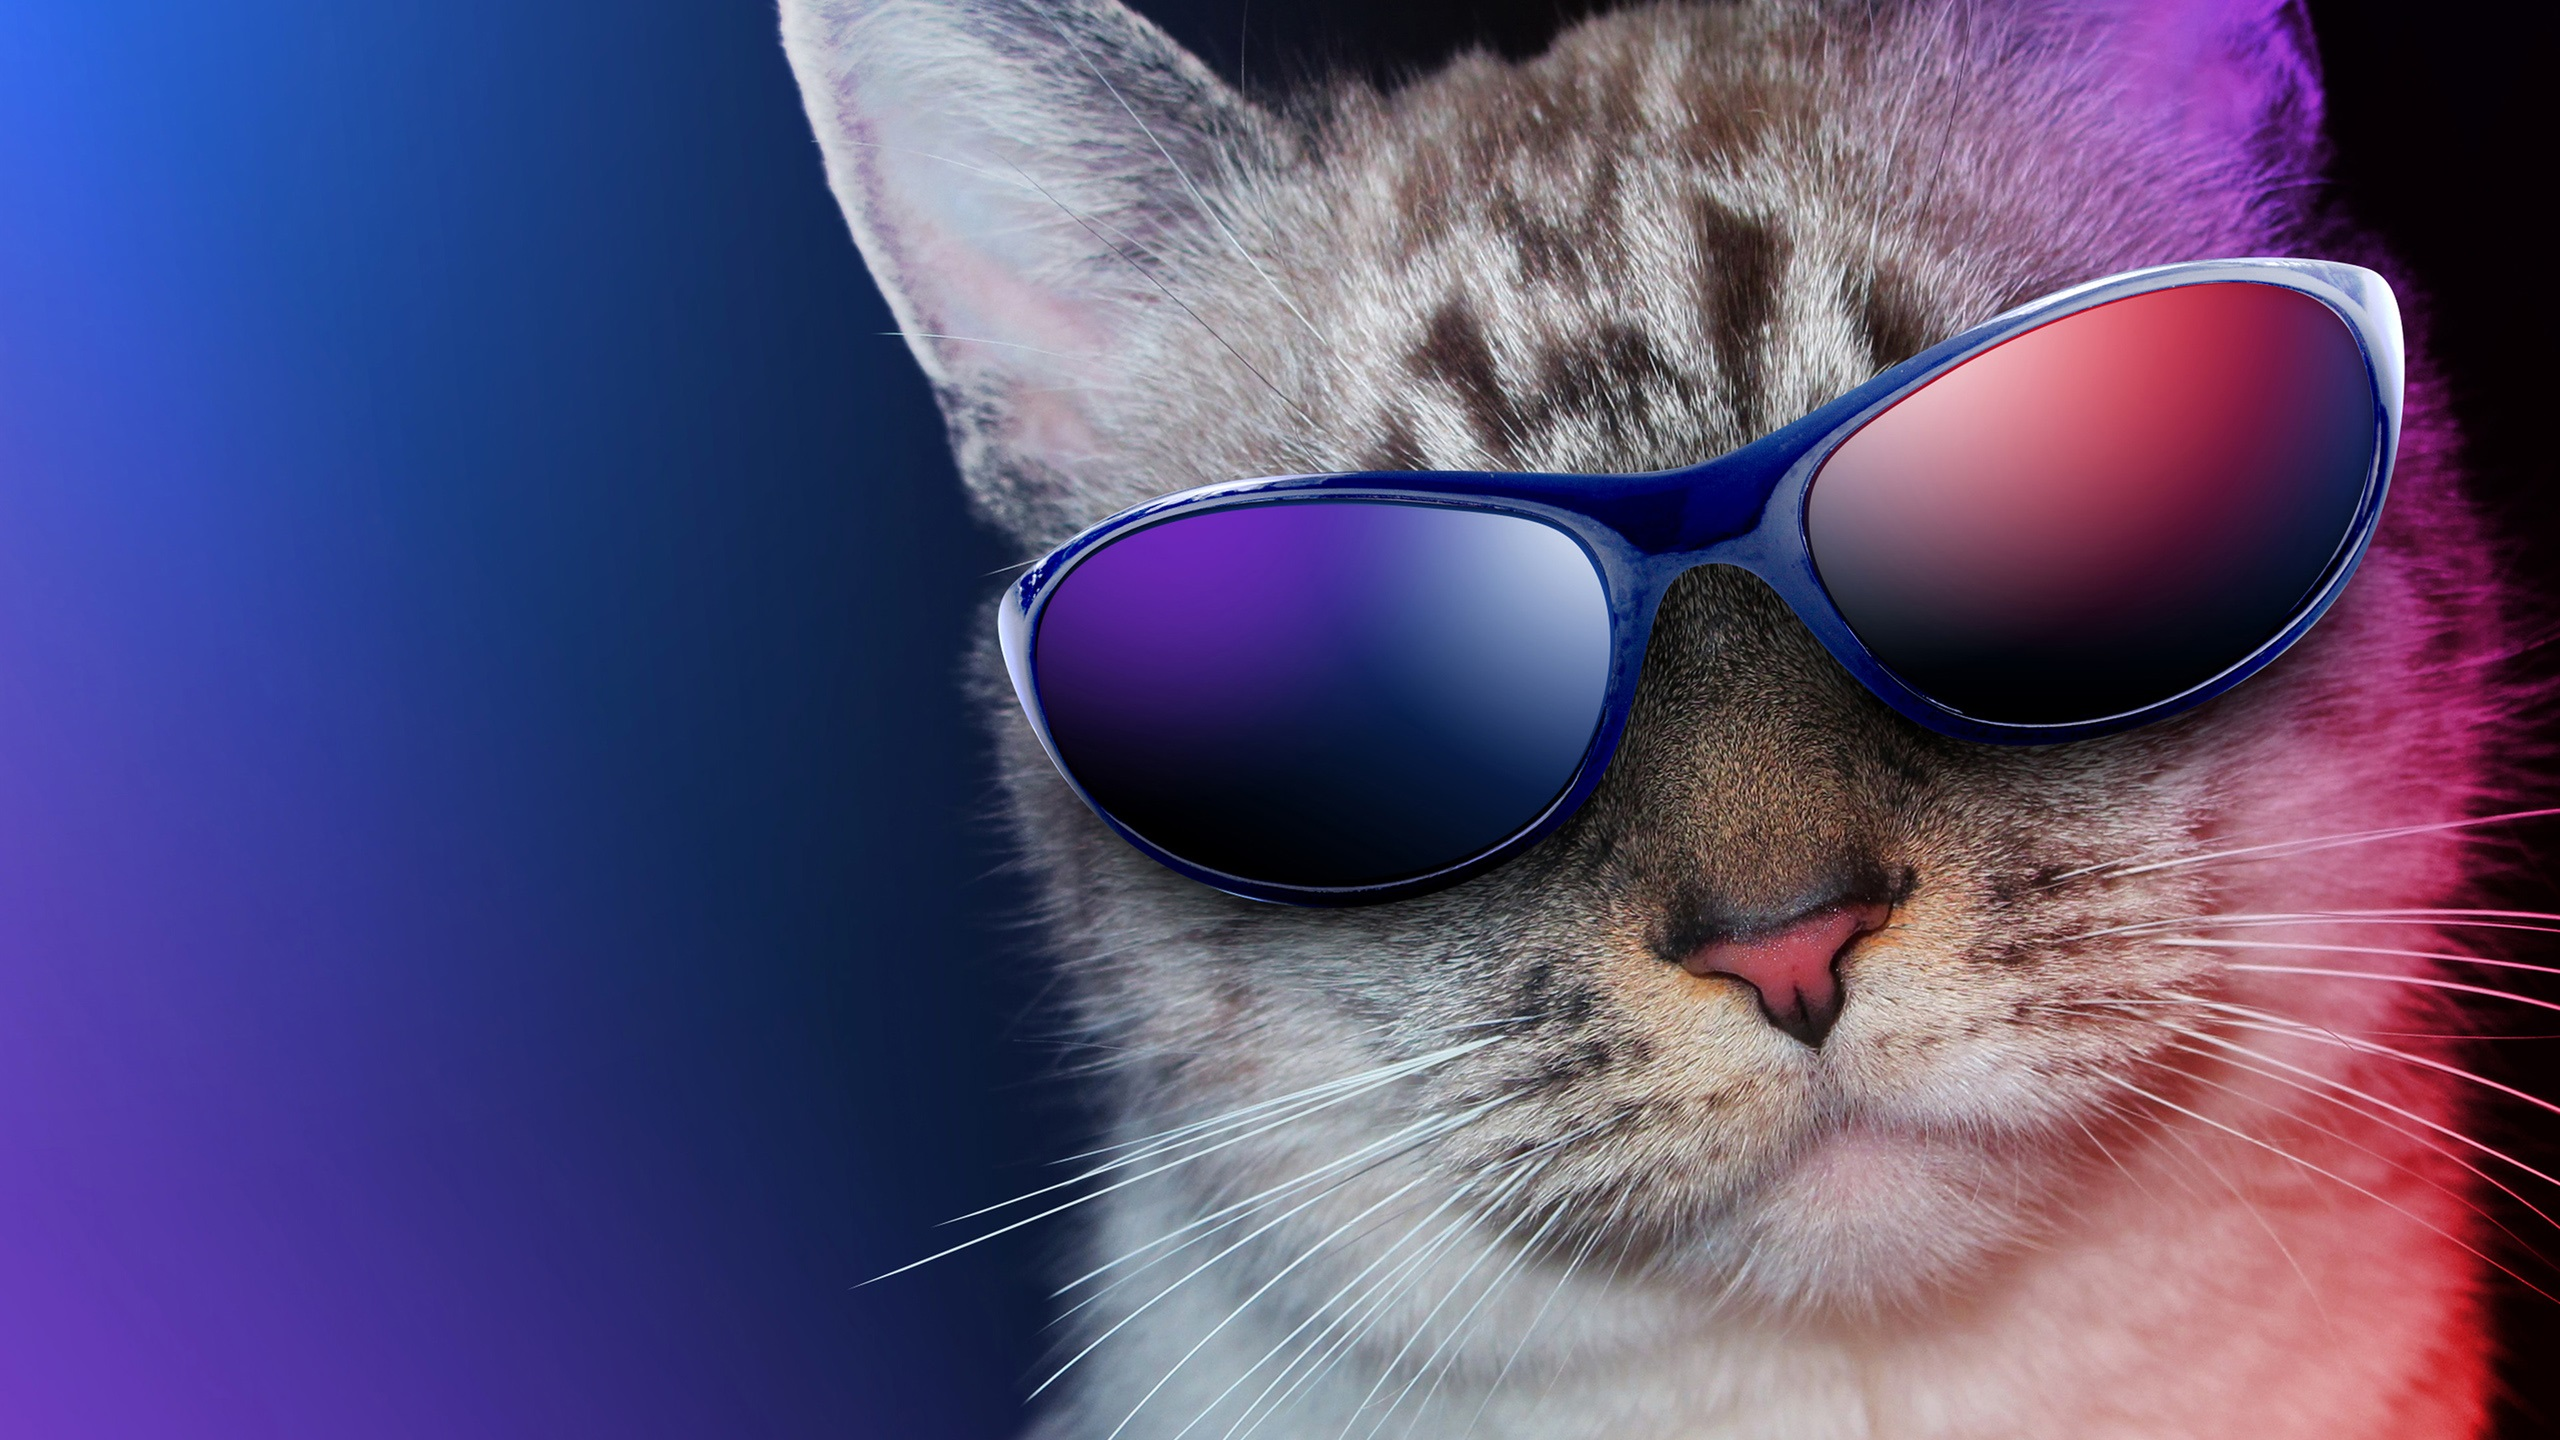 Cool Cat With Glasses Wallpaper Backgrounds 581x359 Px HD Desktop Wallpapers